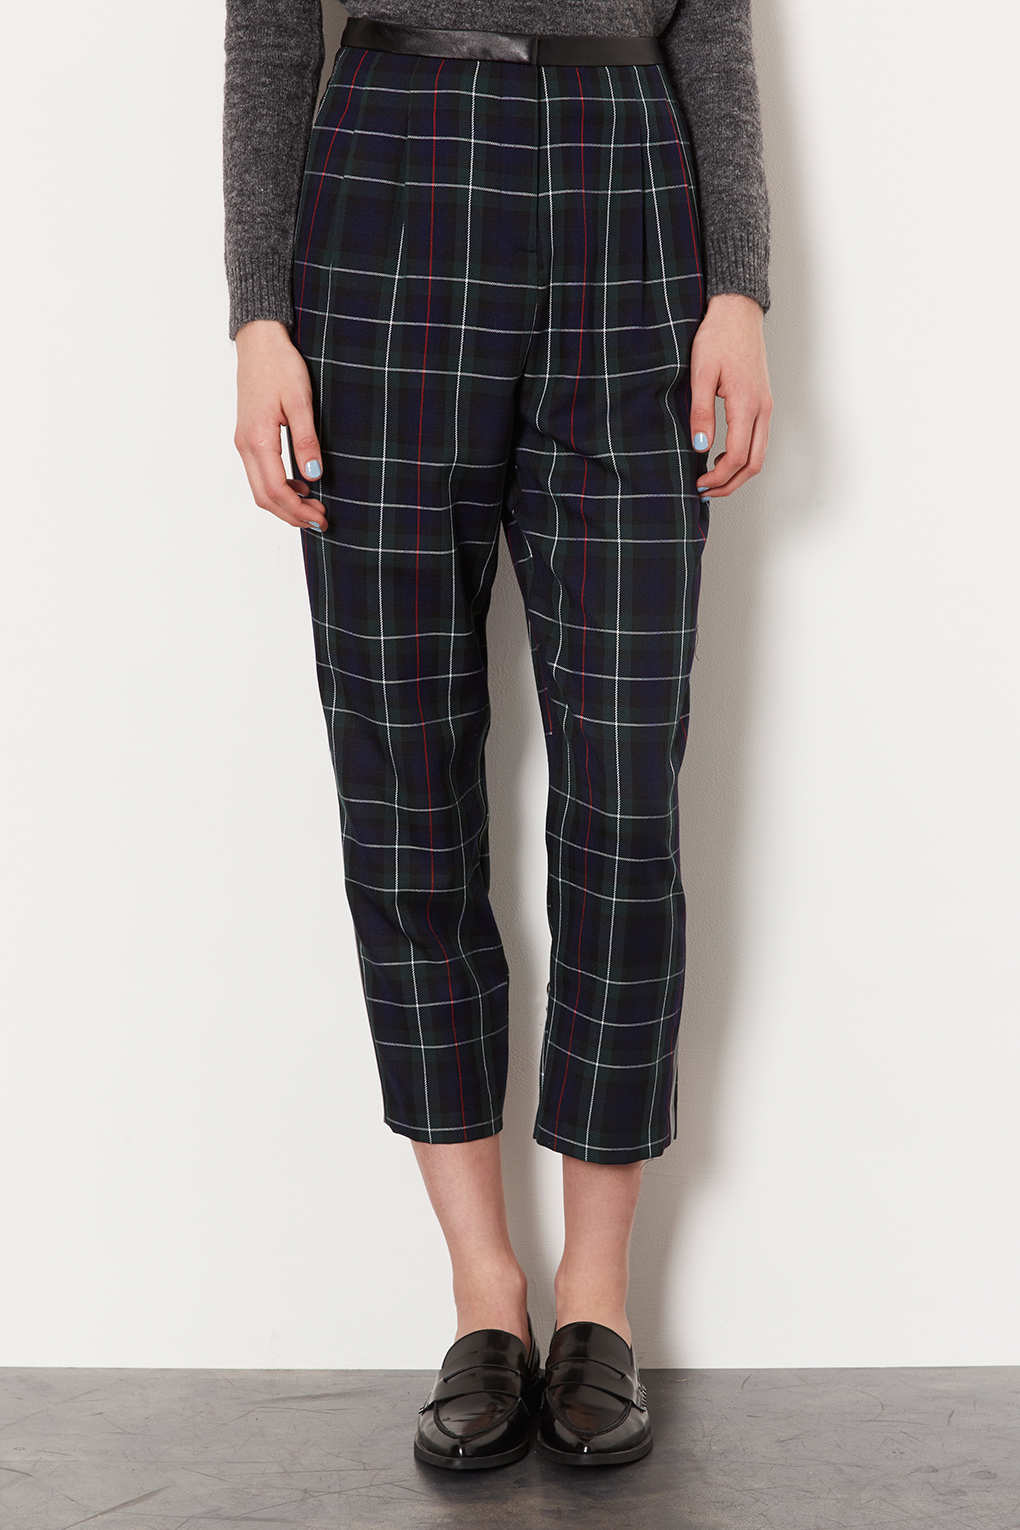 Lyst Topshop Tartan Check Balloon Trousers In Green